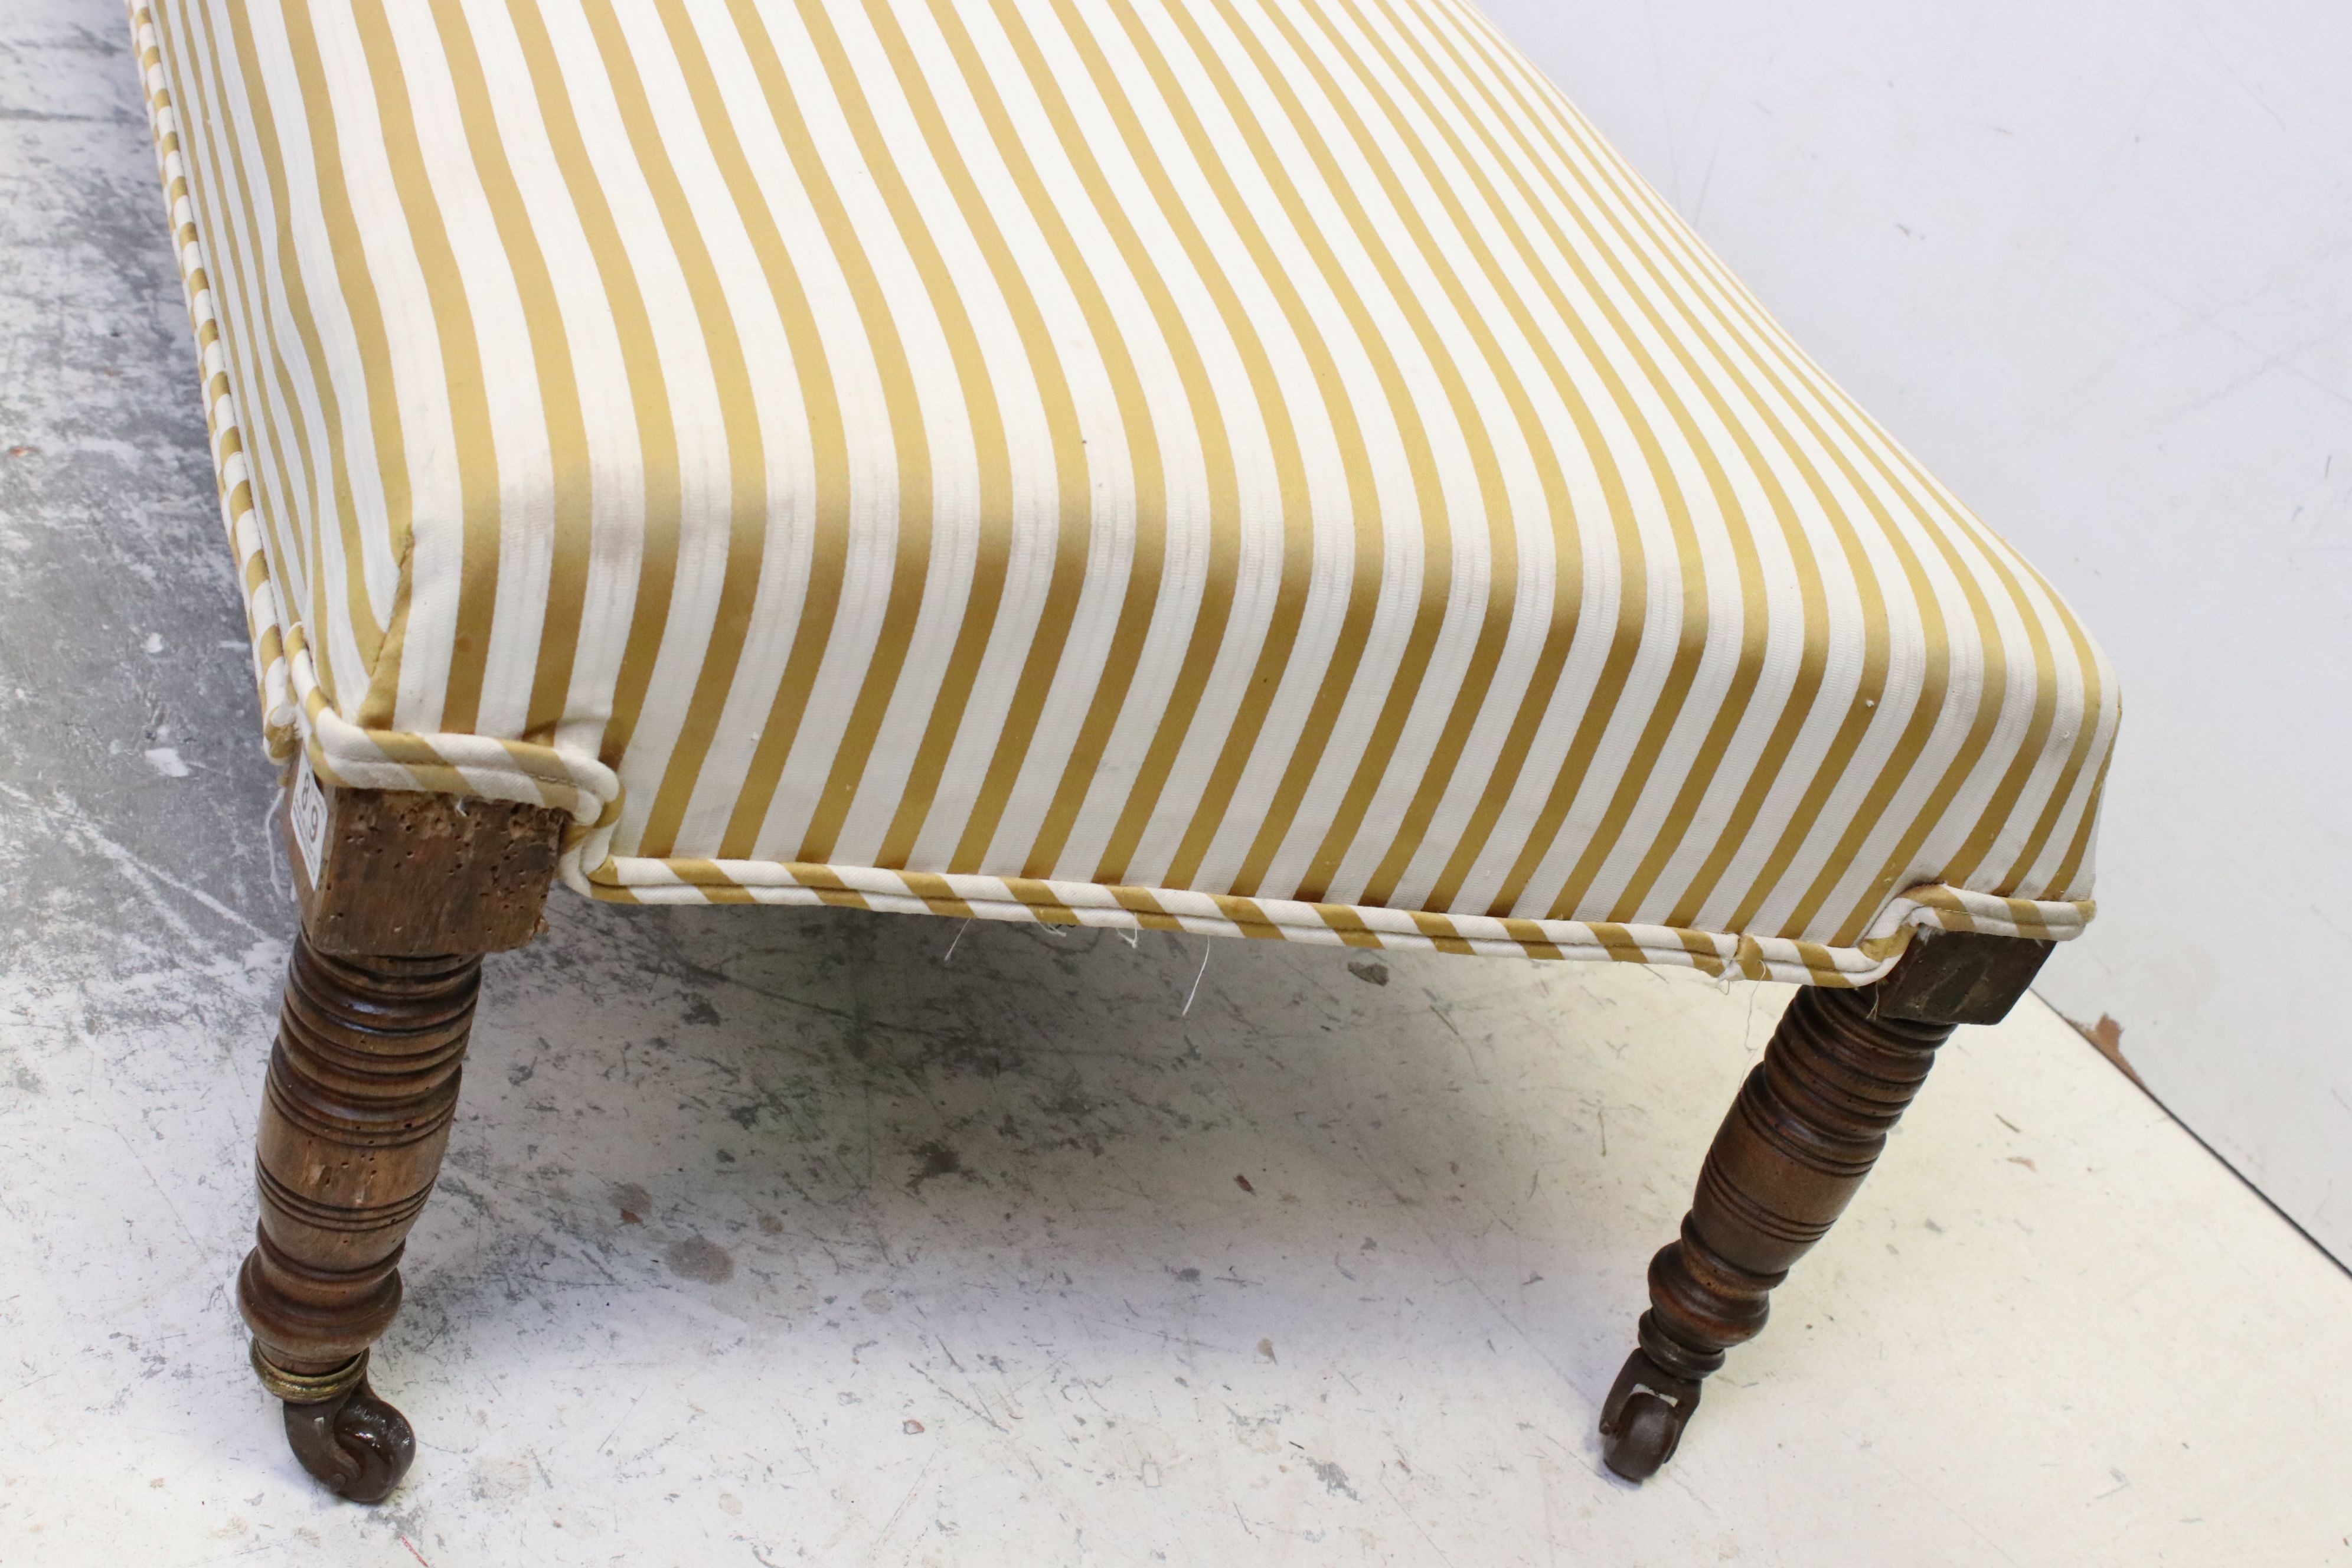 19th century Rectangular Ottoman Stool with striped upholstered top and raised on turned legs with - Image 2 of 5